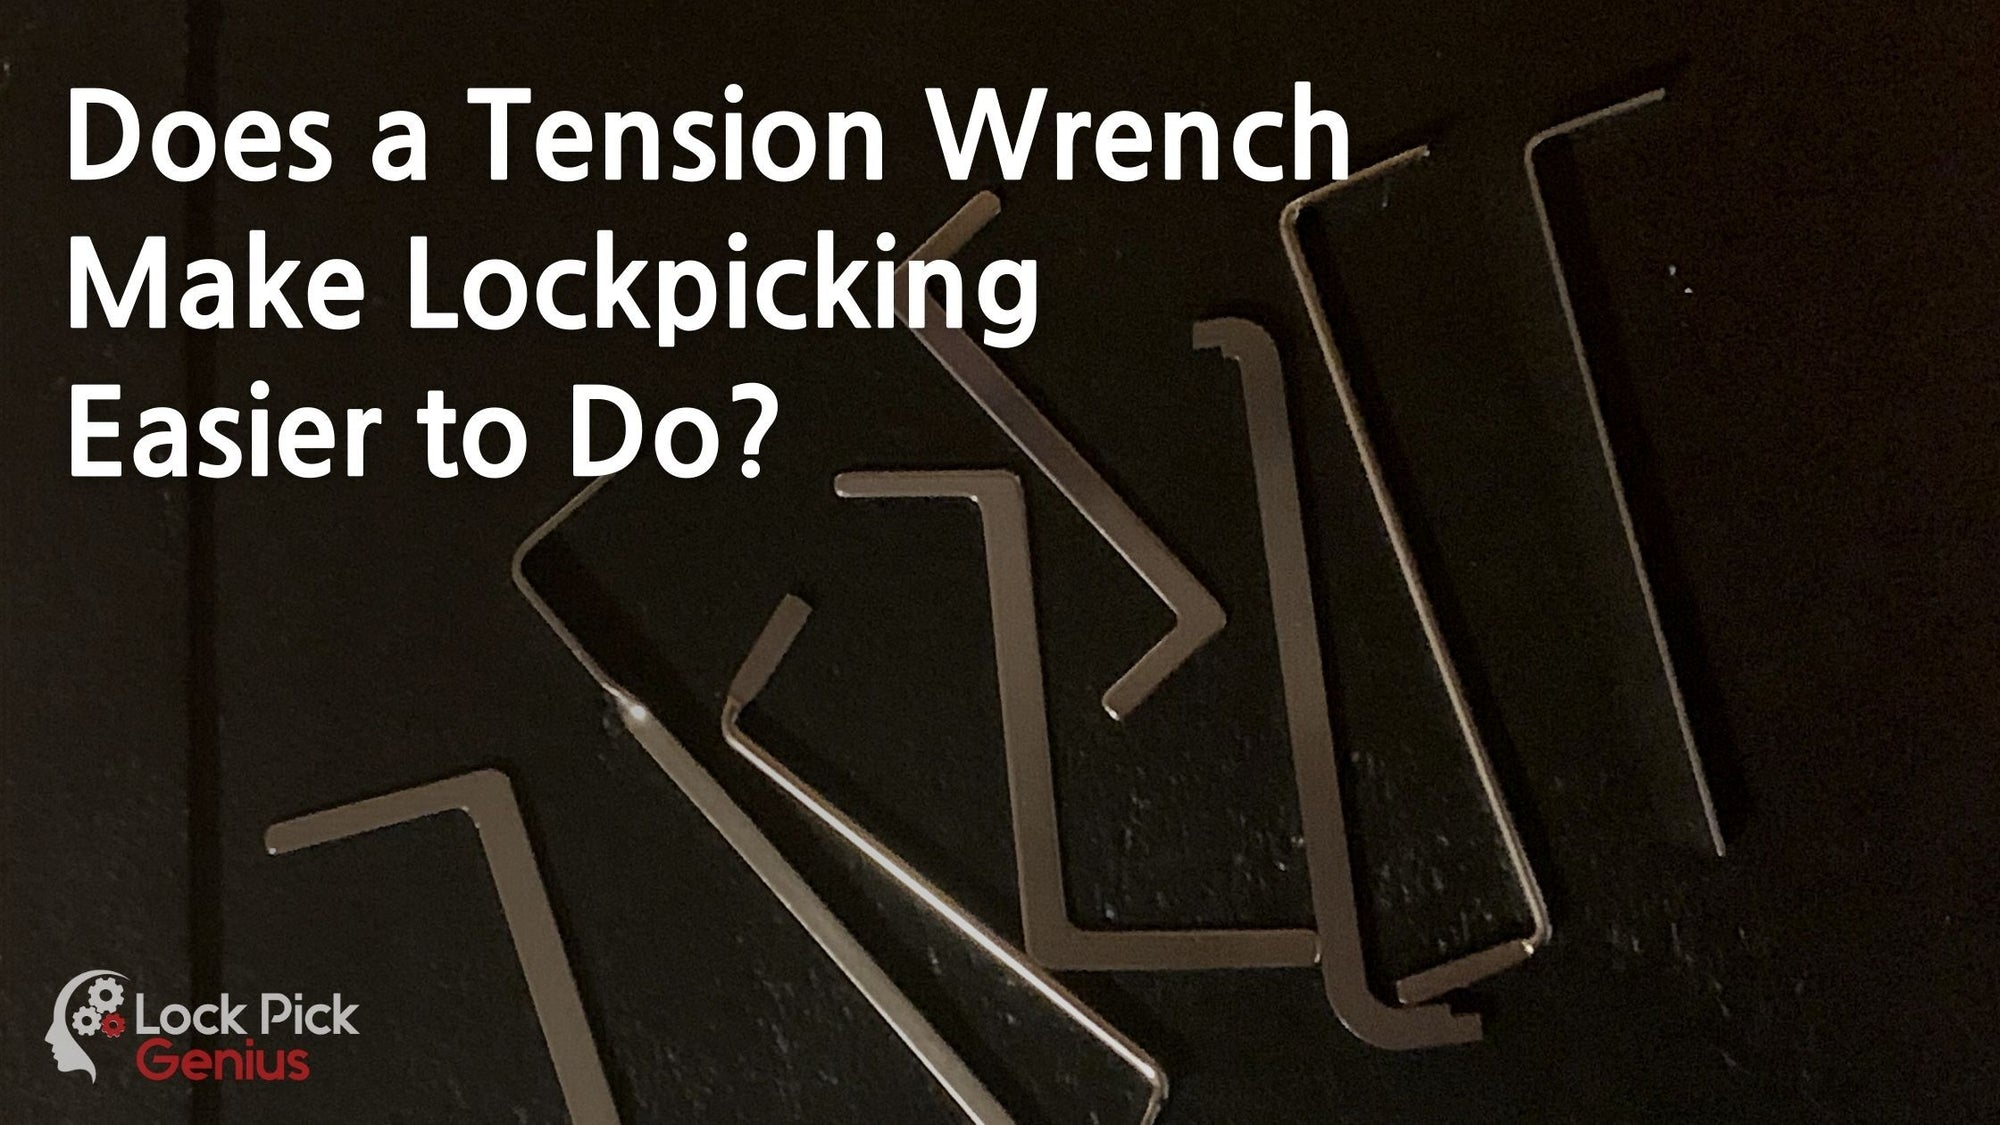 Does a Tension Wrench Make Lockpicking Easier to Do